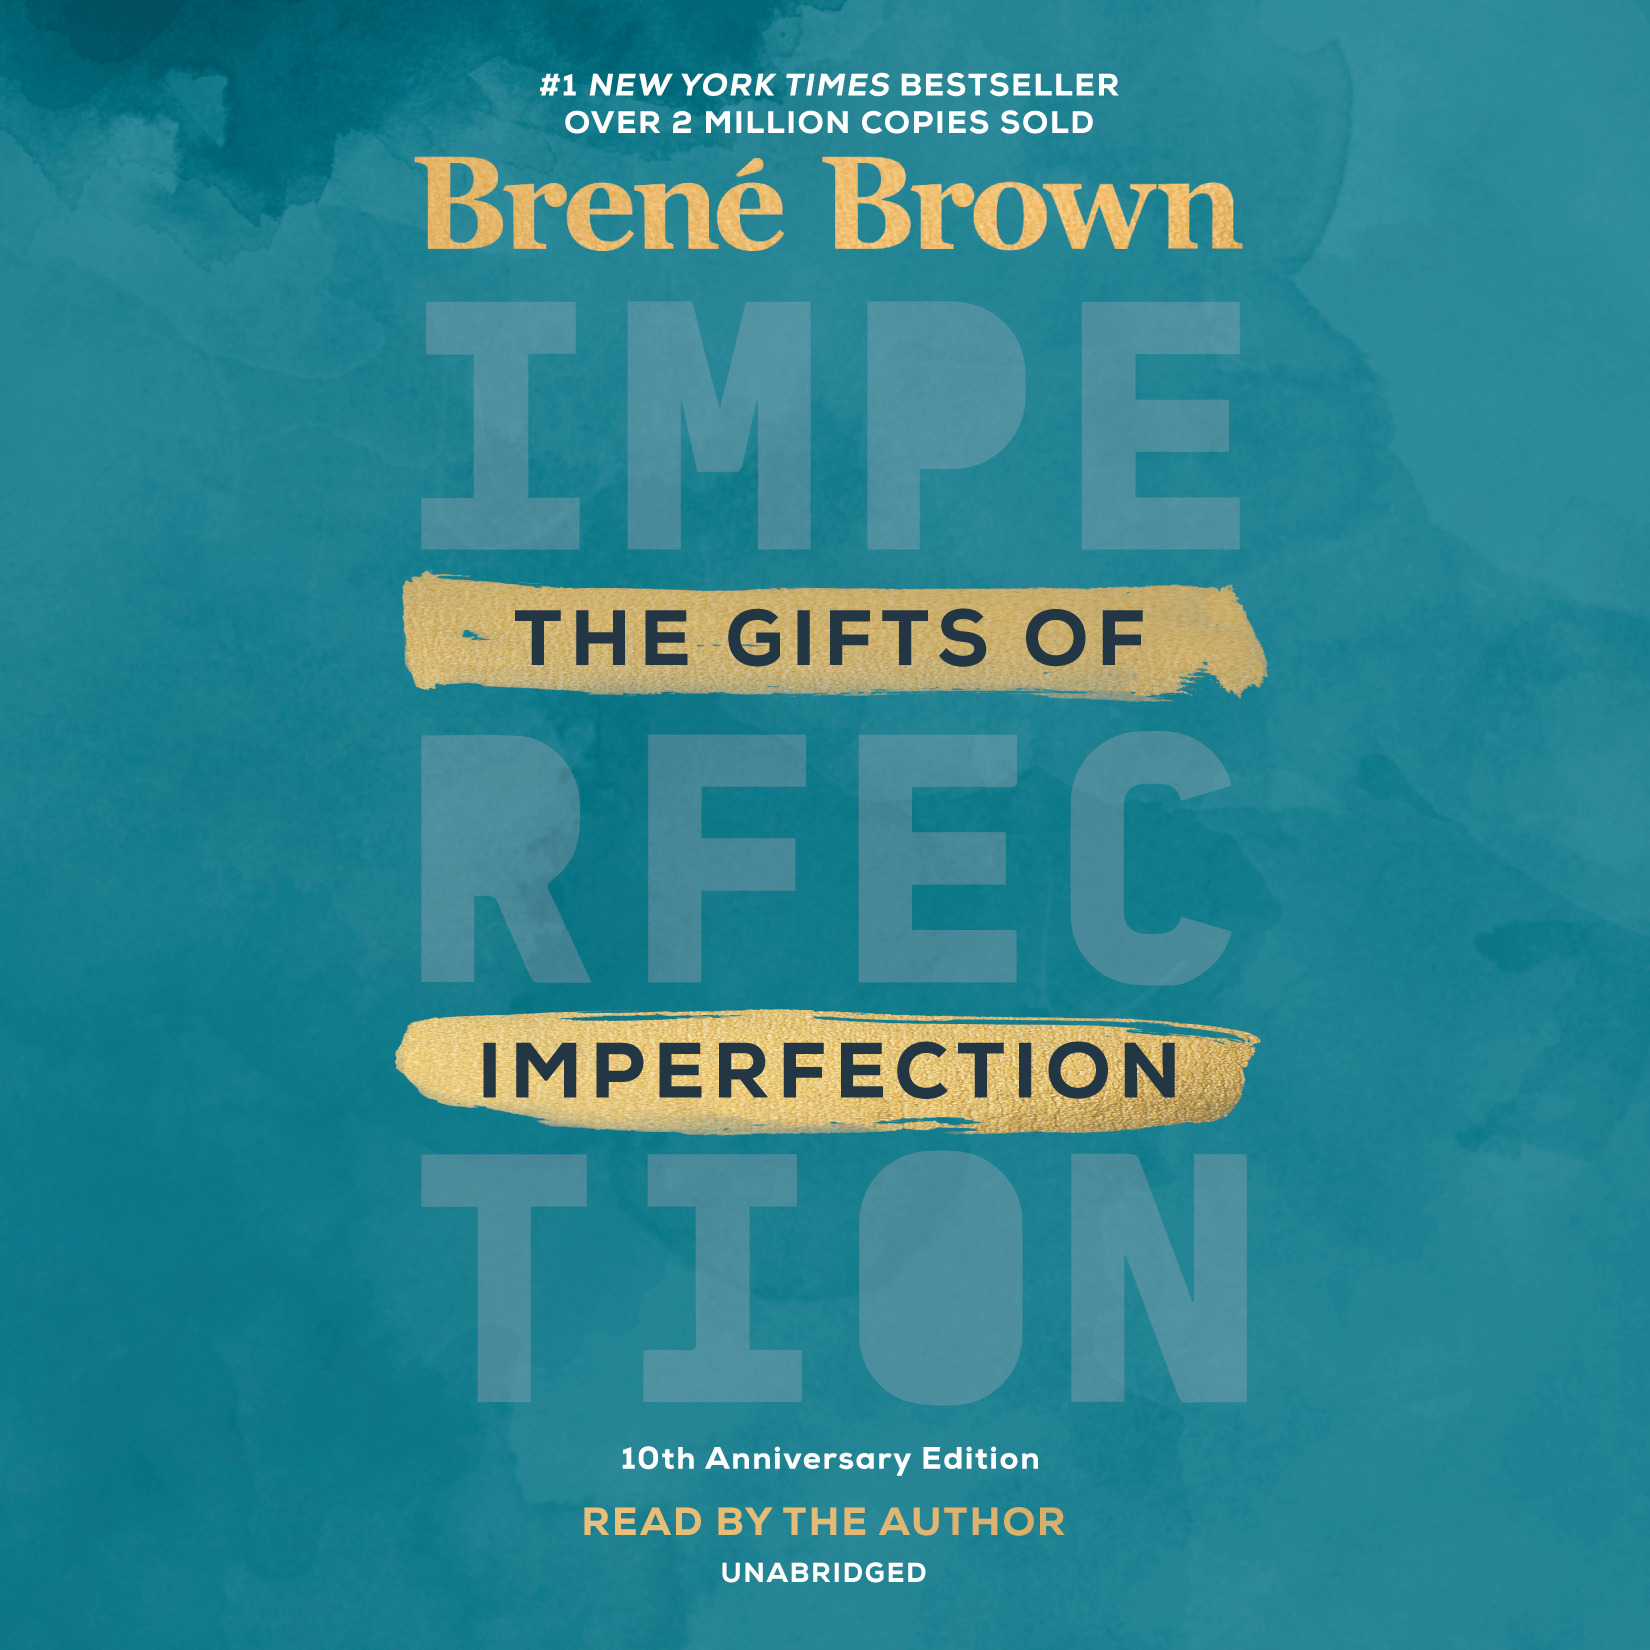 image for The Gifts of Imperfection: 10th Anniversary Edition